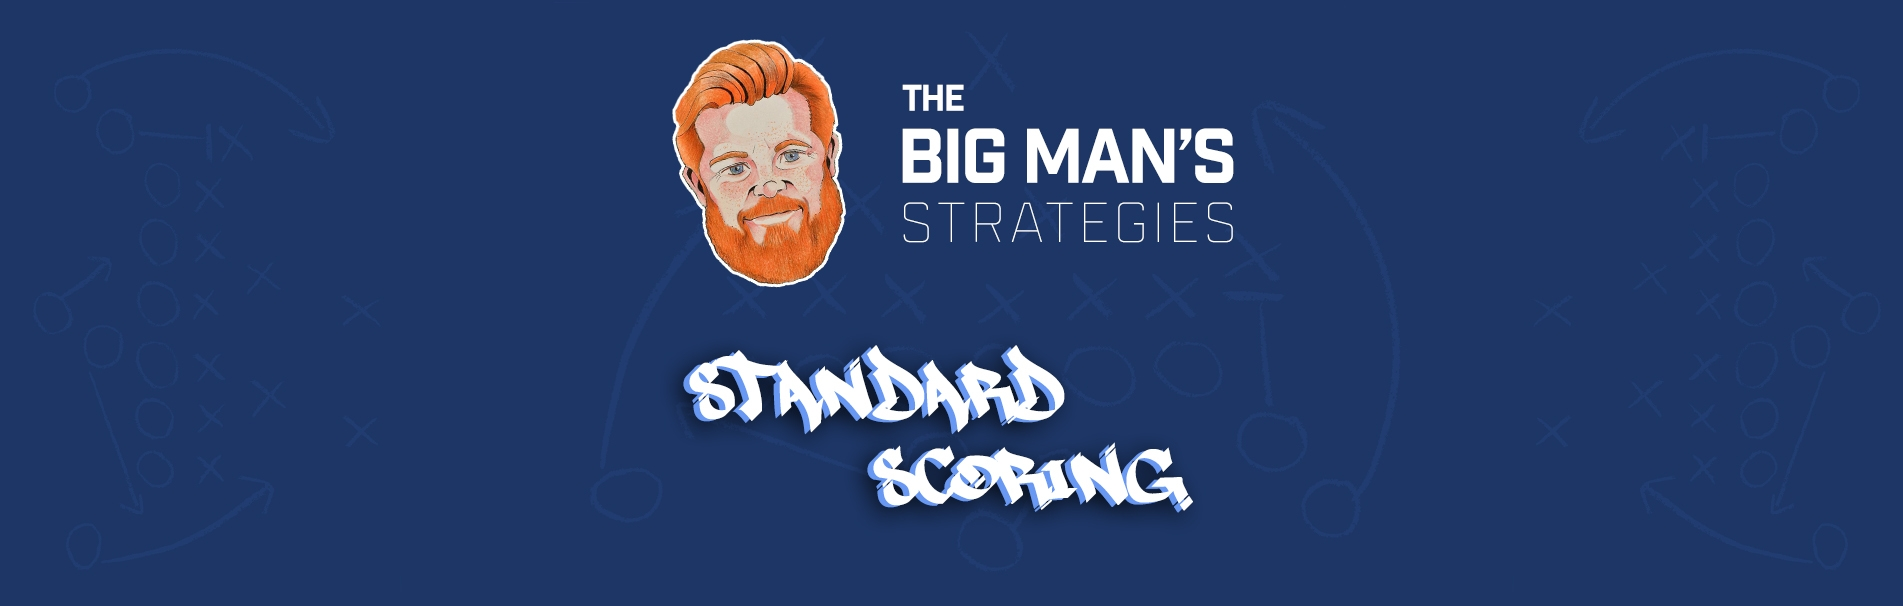 The Big Mans Strategies Standard Scoring